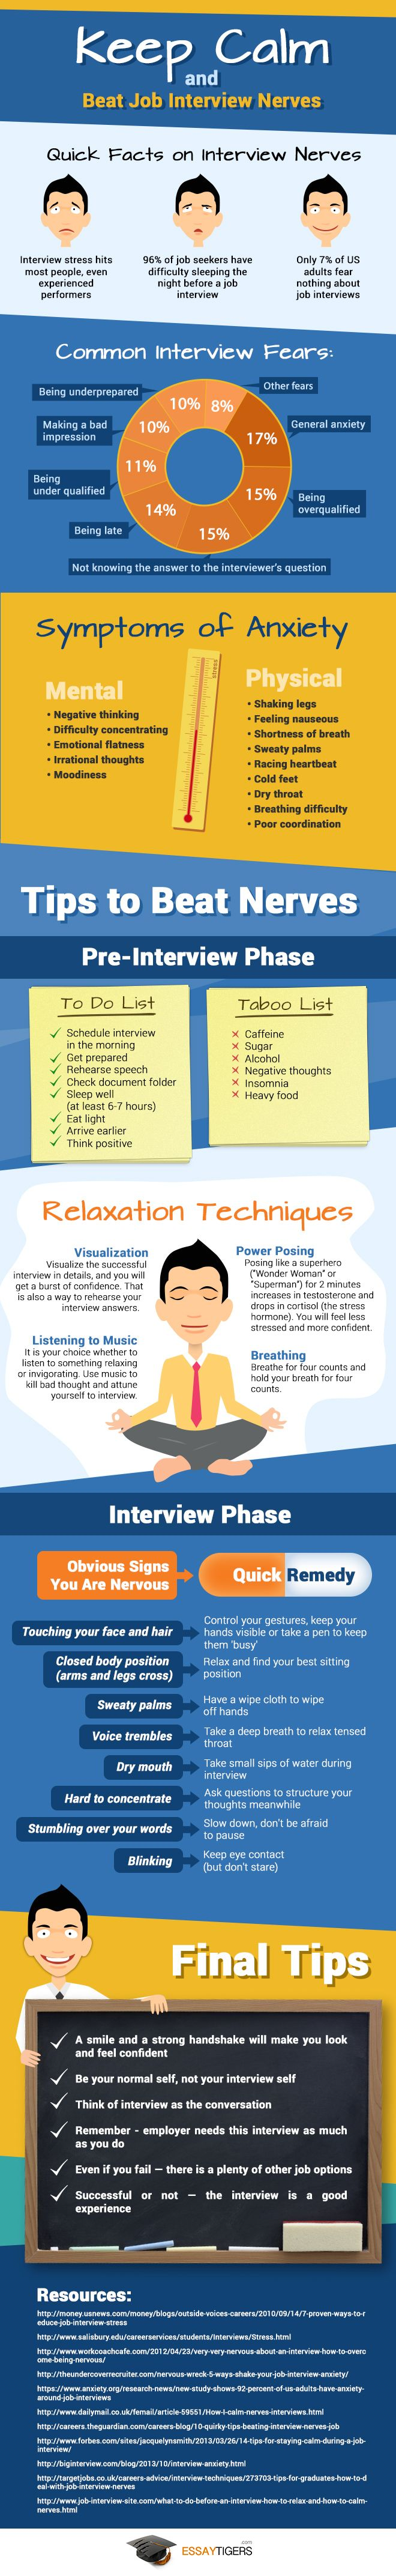 How to Stay Calm with Job Interviews [INFOGRAPHIC] http://theundercoverrecruiter.com/interview-anxiety-preparation/